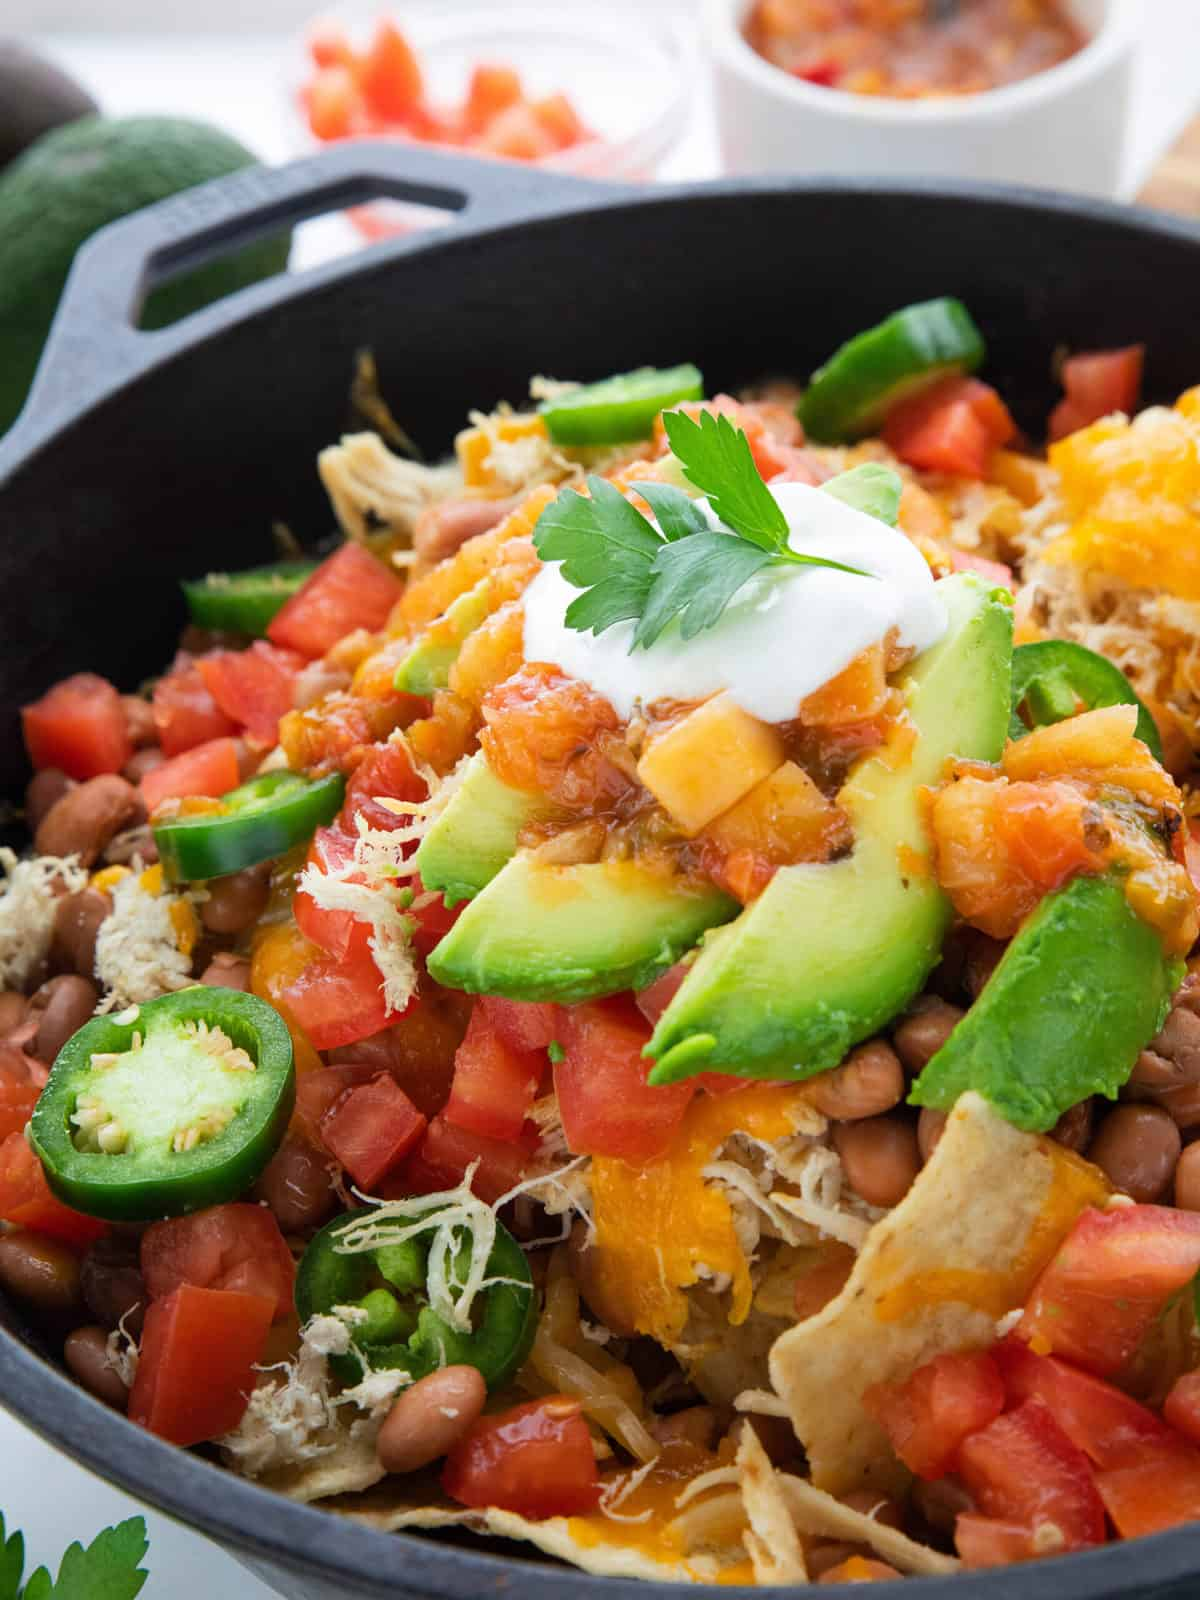 Shredded Chicken Skillet Nachos showing nachos with toppings in a cast iron pan.